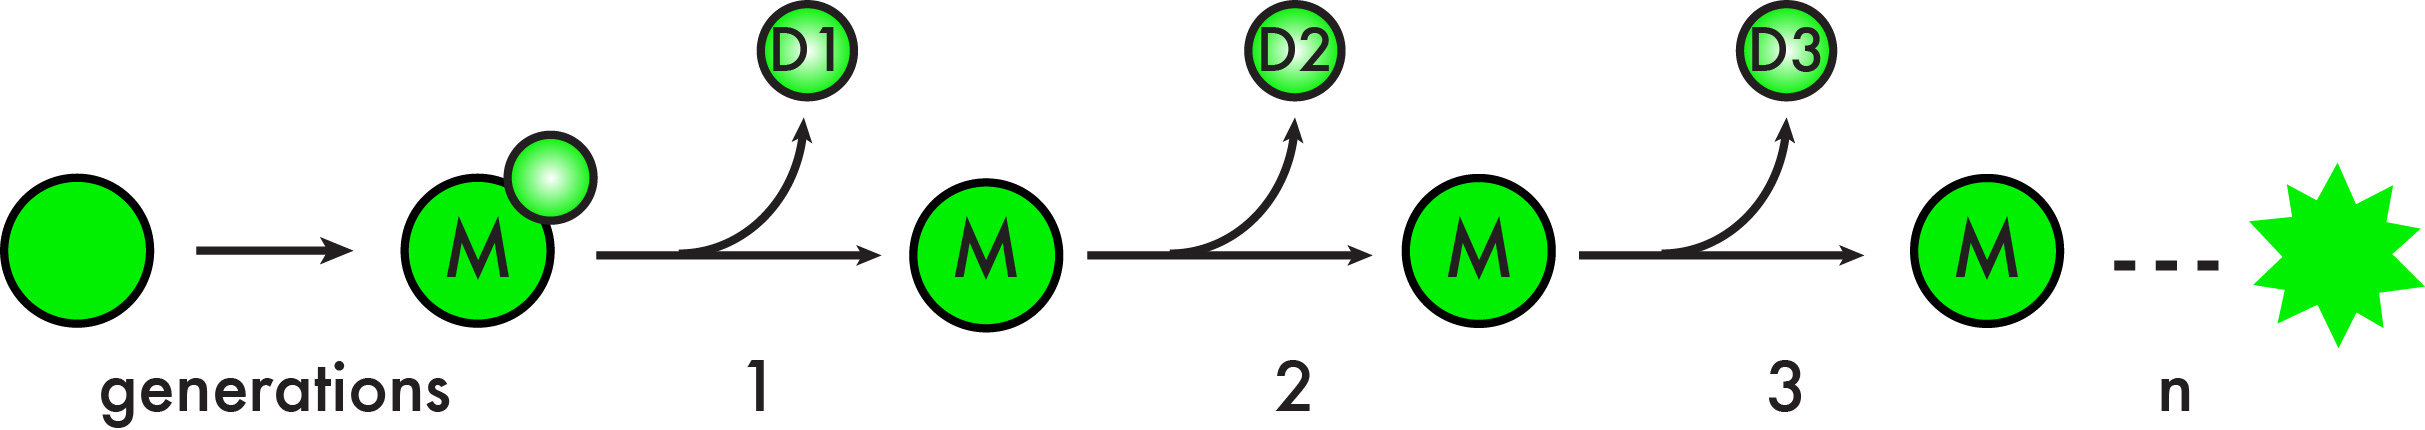 Replicative lifespan in budding yeast is measured by the total number of cell divisions a mother cell (M) undergoes to produce its daughters (D).